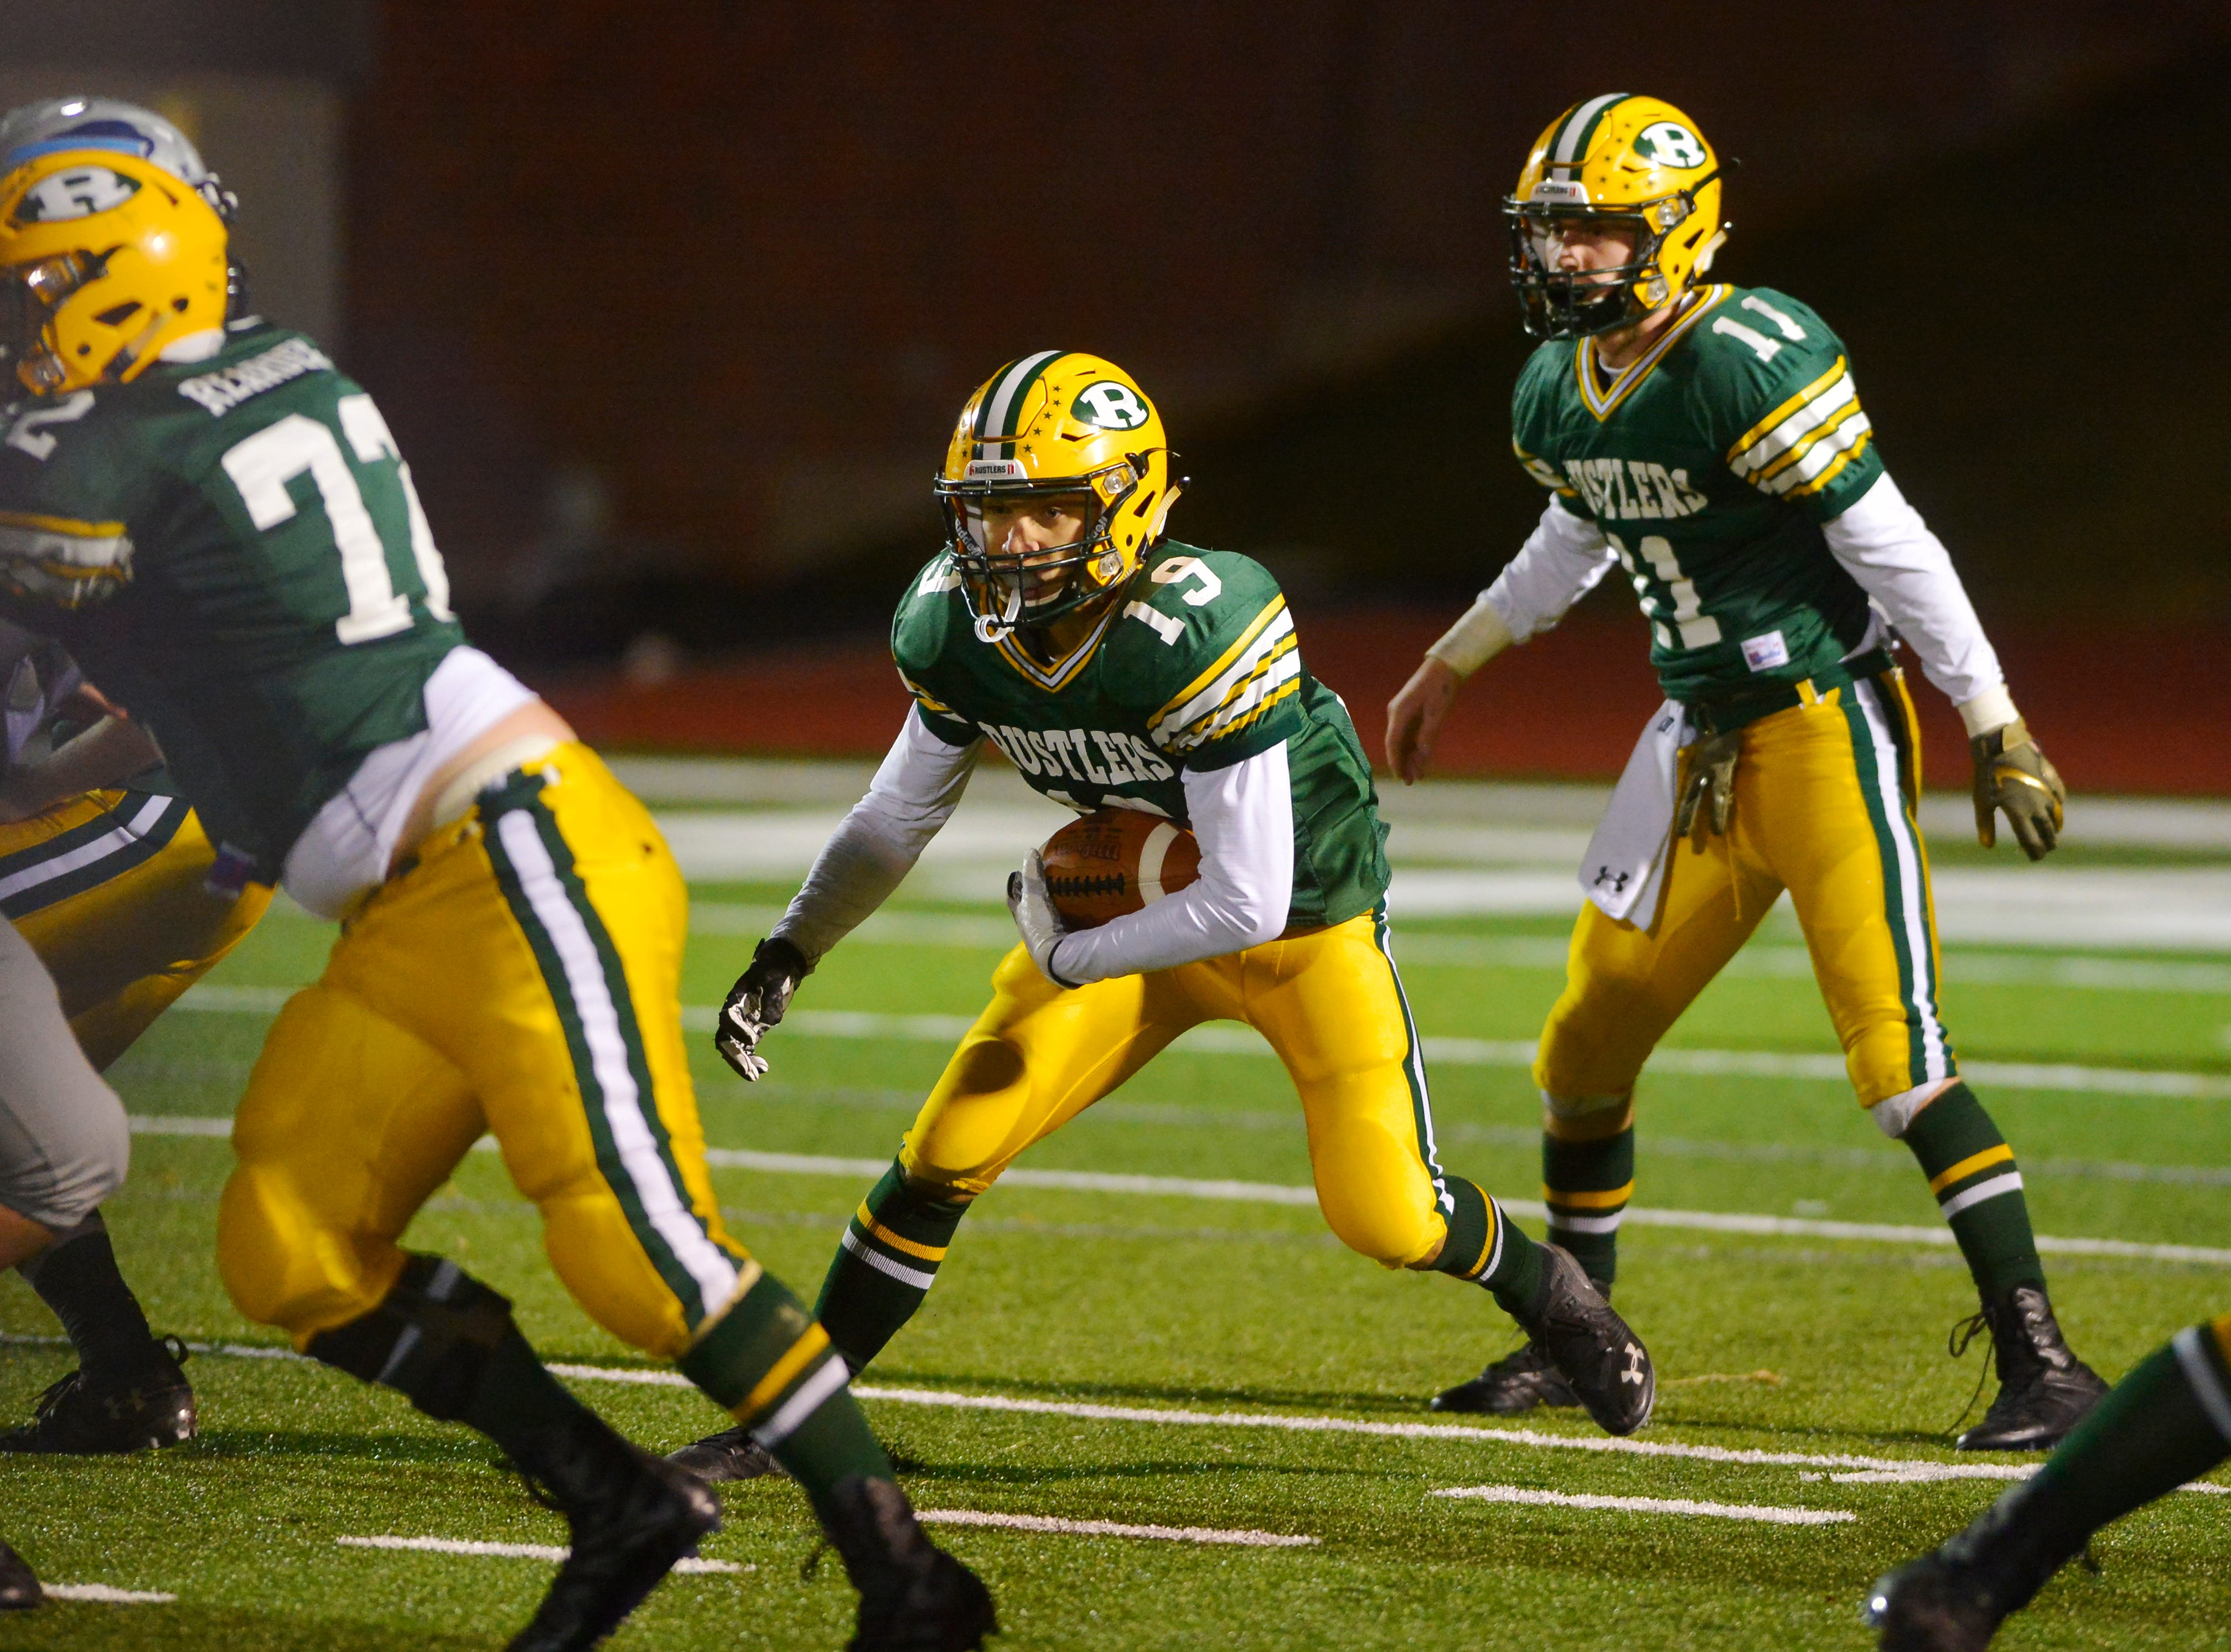 CMR's Logan Richard carries the football during the crosstown football game between Great Falls High and CMR on Friday night at Memorial Stadium.